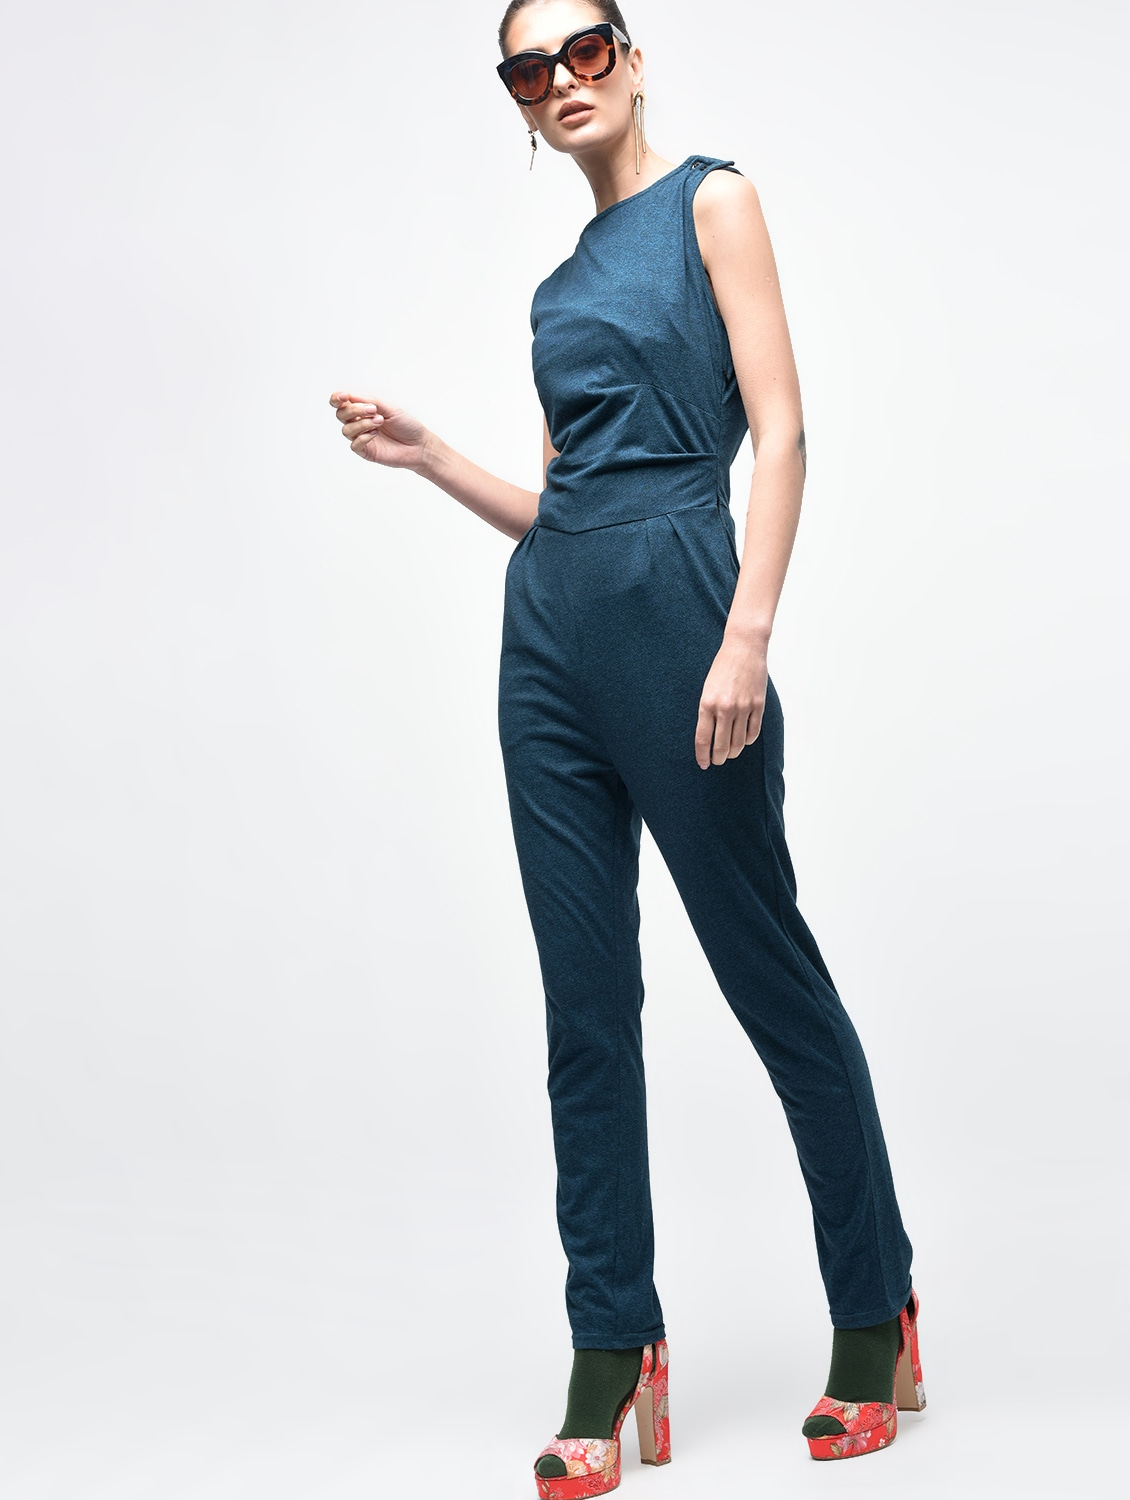 dc204a85c3d Buy Boat Neck Button Detail Jumpsuit for Women from Serendipity for ₹700 at  74% off